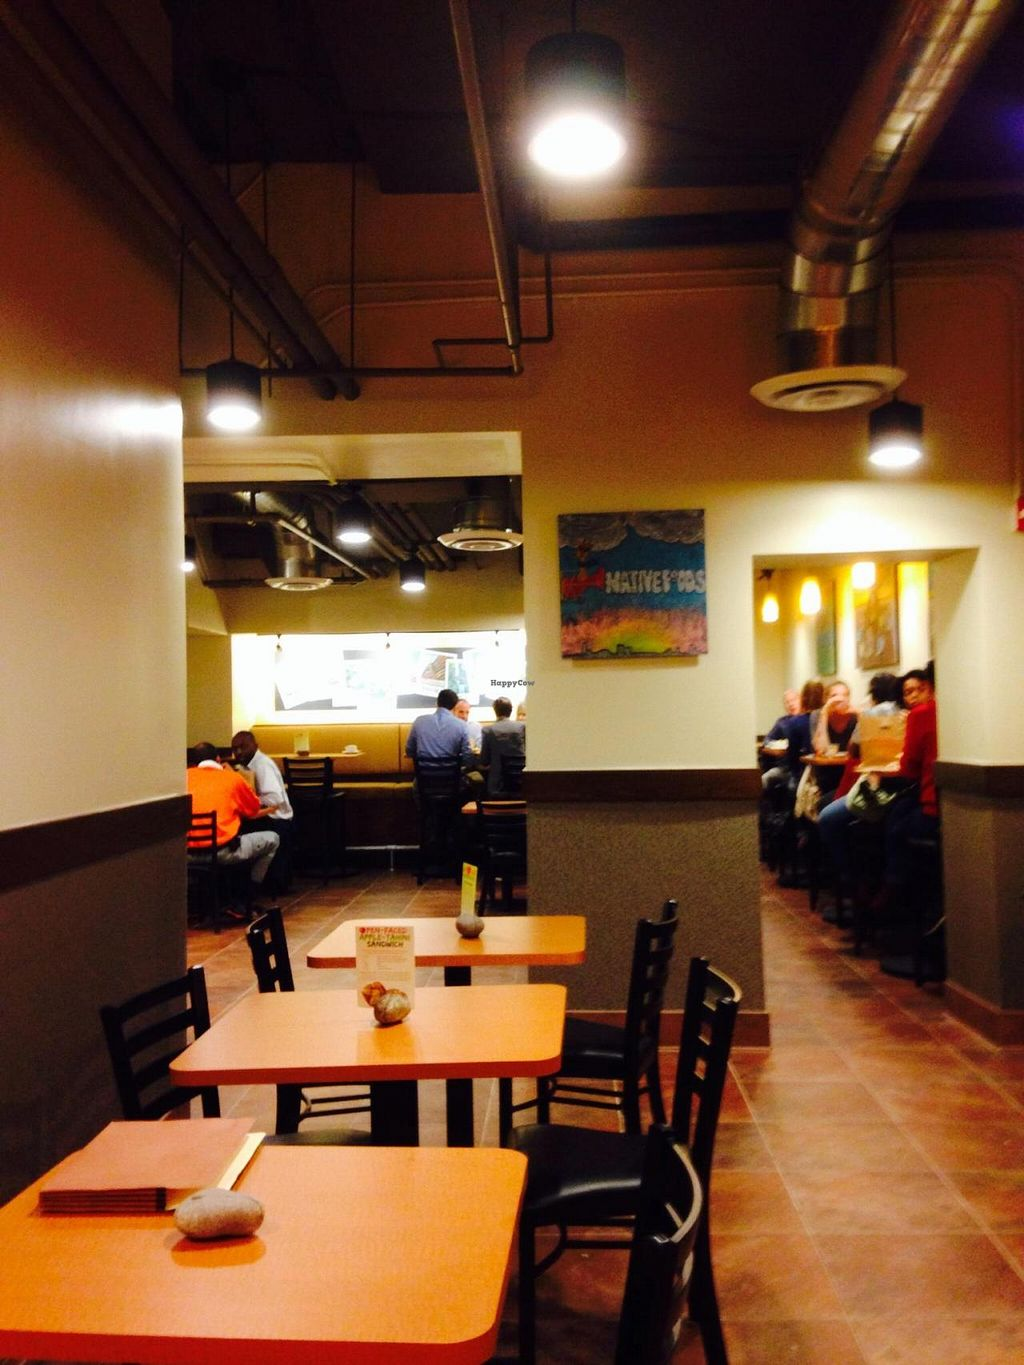 """Photo of CLOSED: Native Foods - Conn Ave  by <a href=""""/members/profile/cookiem"""">cookiem</a> <br/>Part of downstairs seating <br/> September 27, 2014  - <a href='/contact/abuse/image/51093/81273'>Report</a>"""